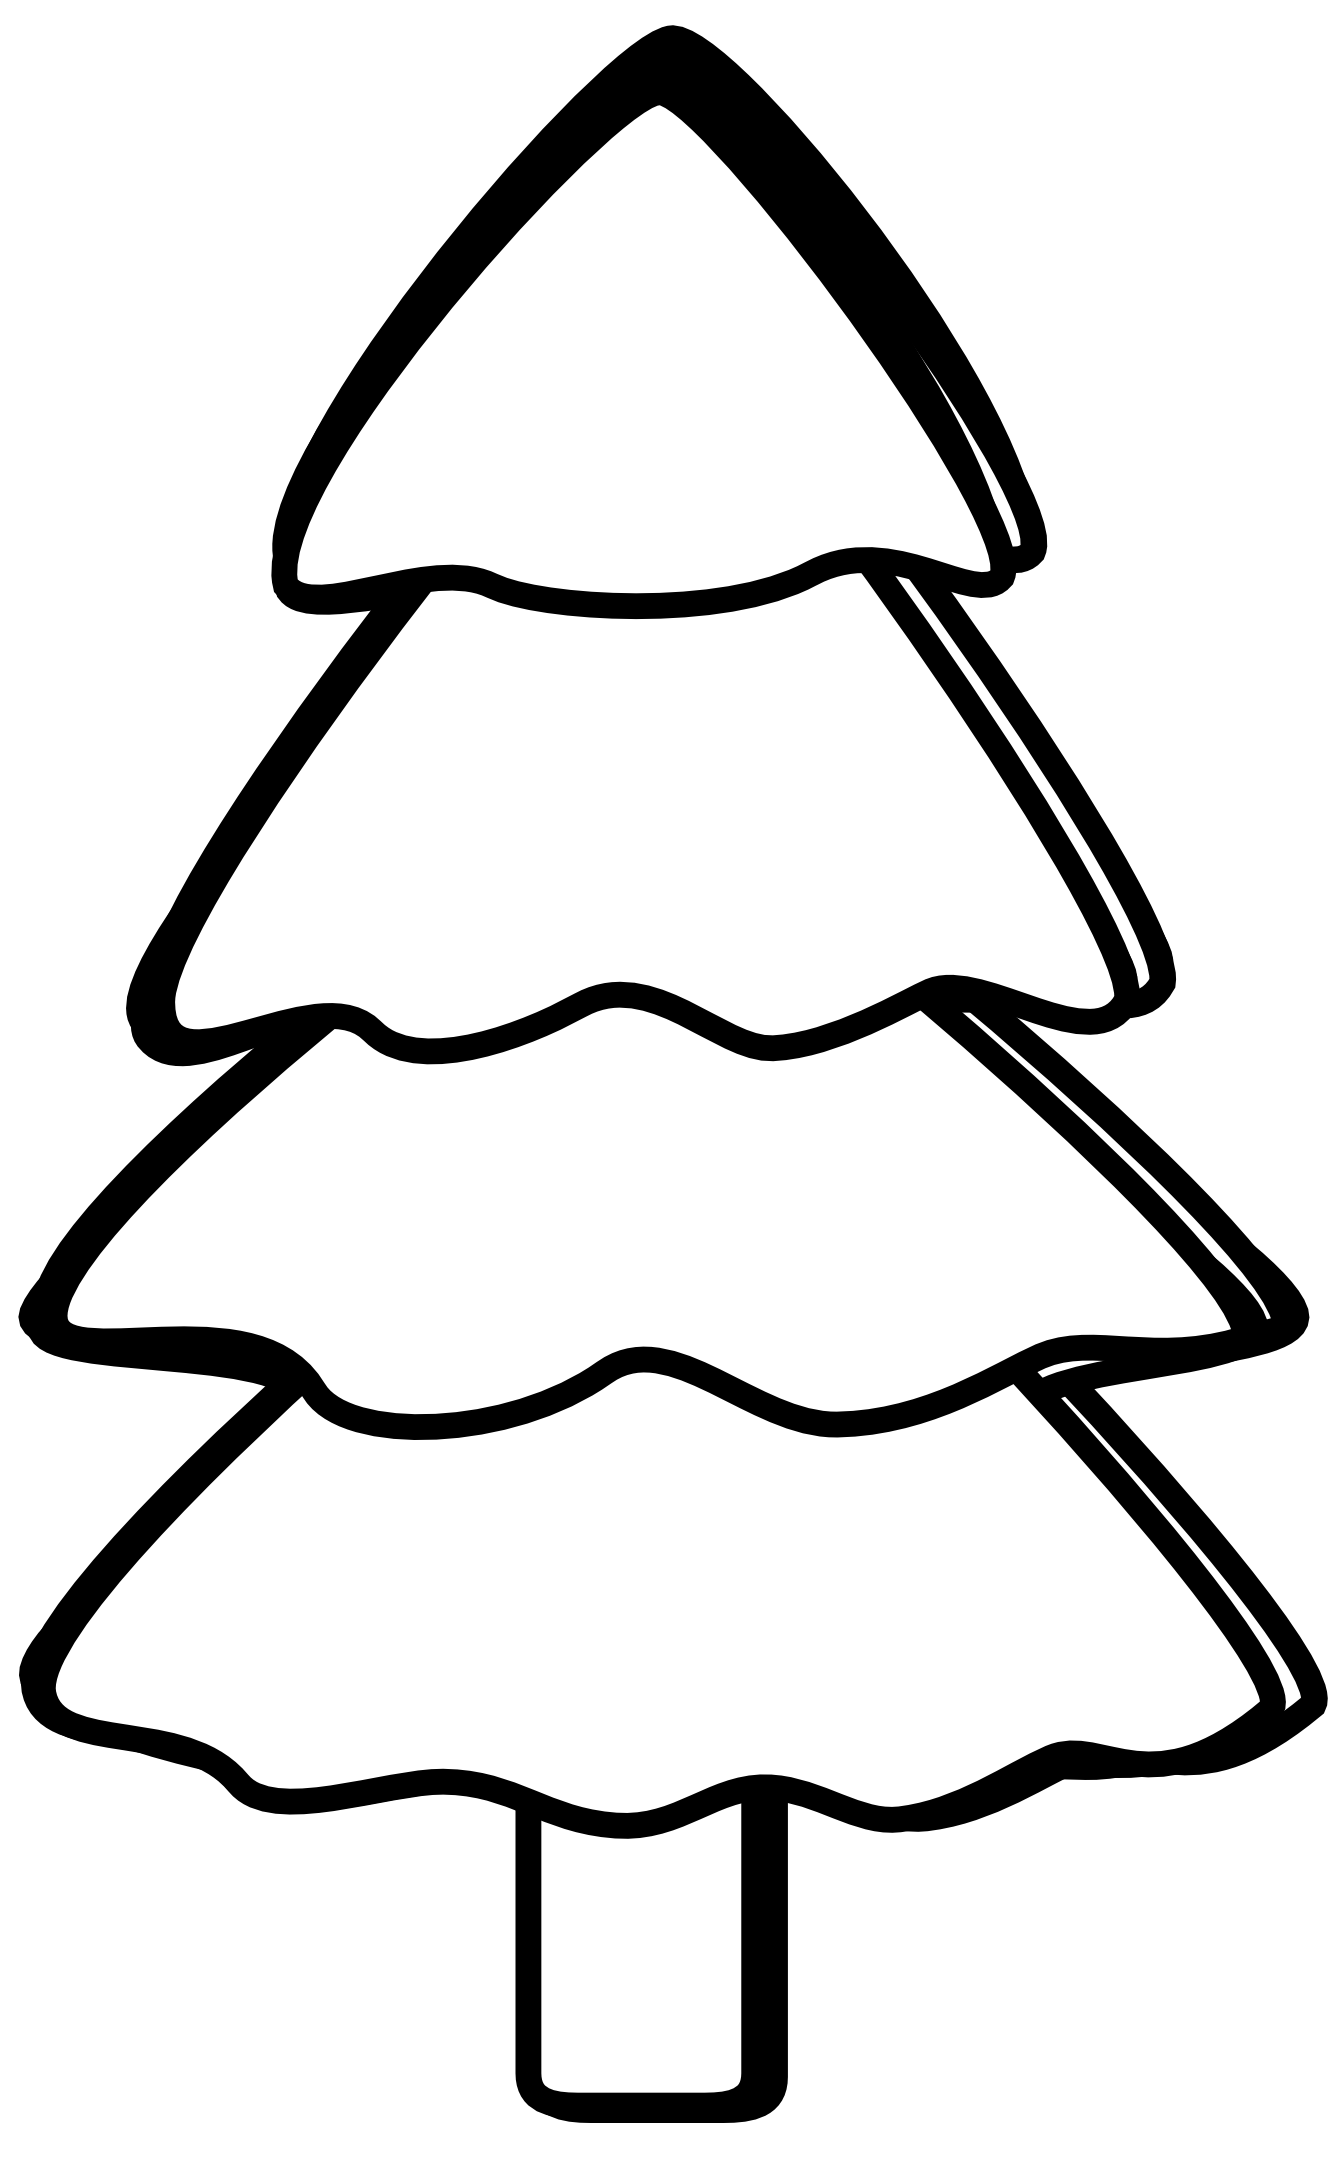 Black And White Tree Clipart.